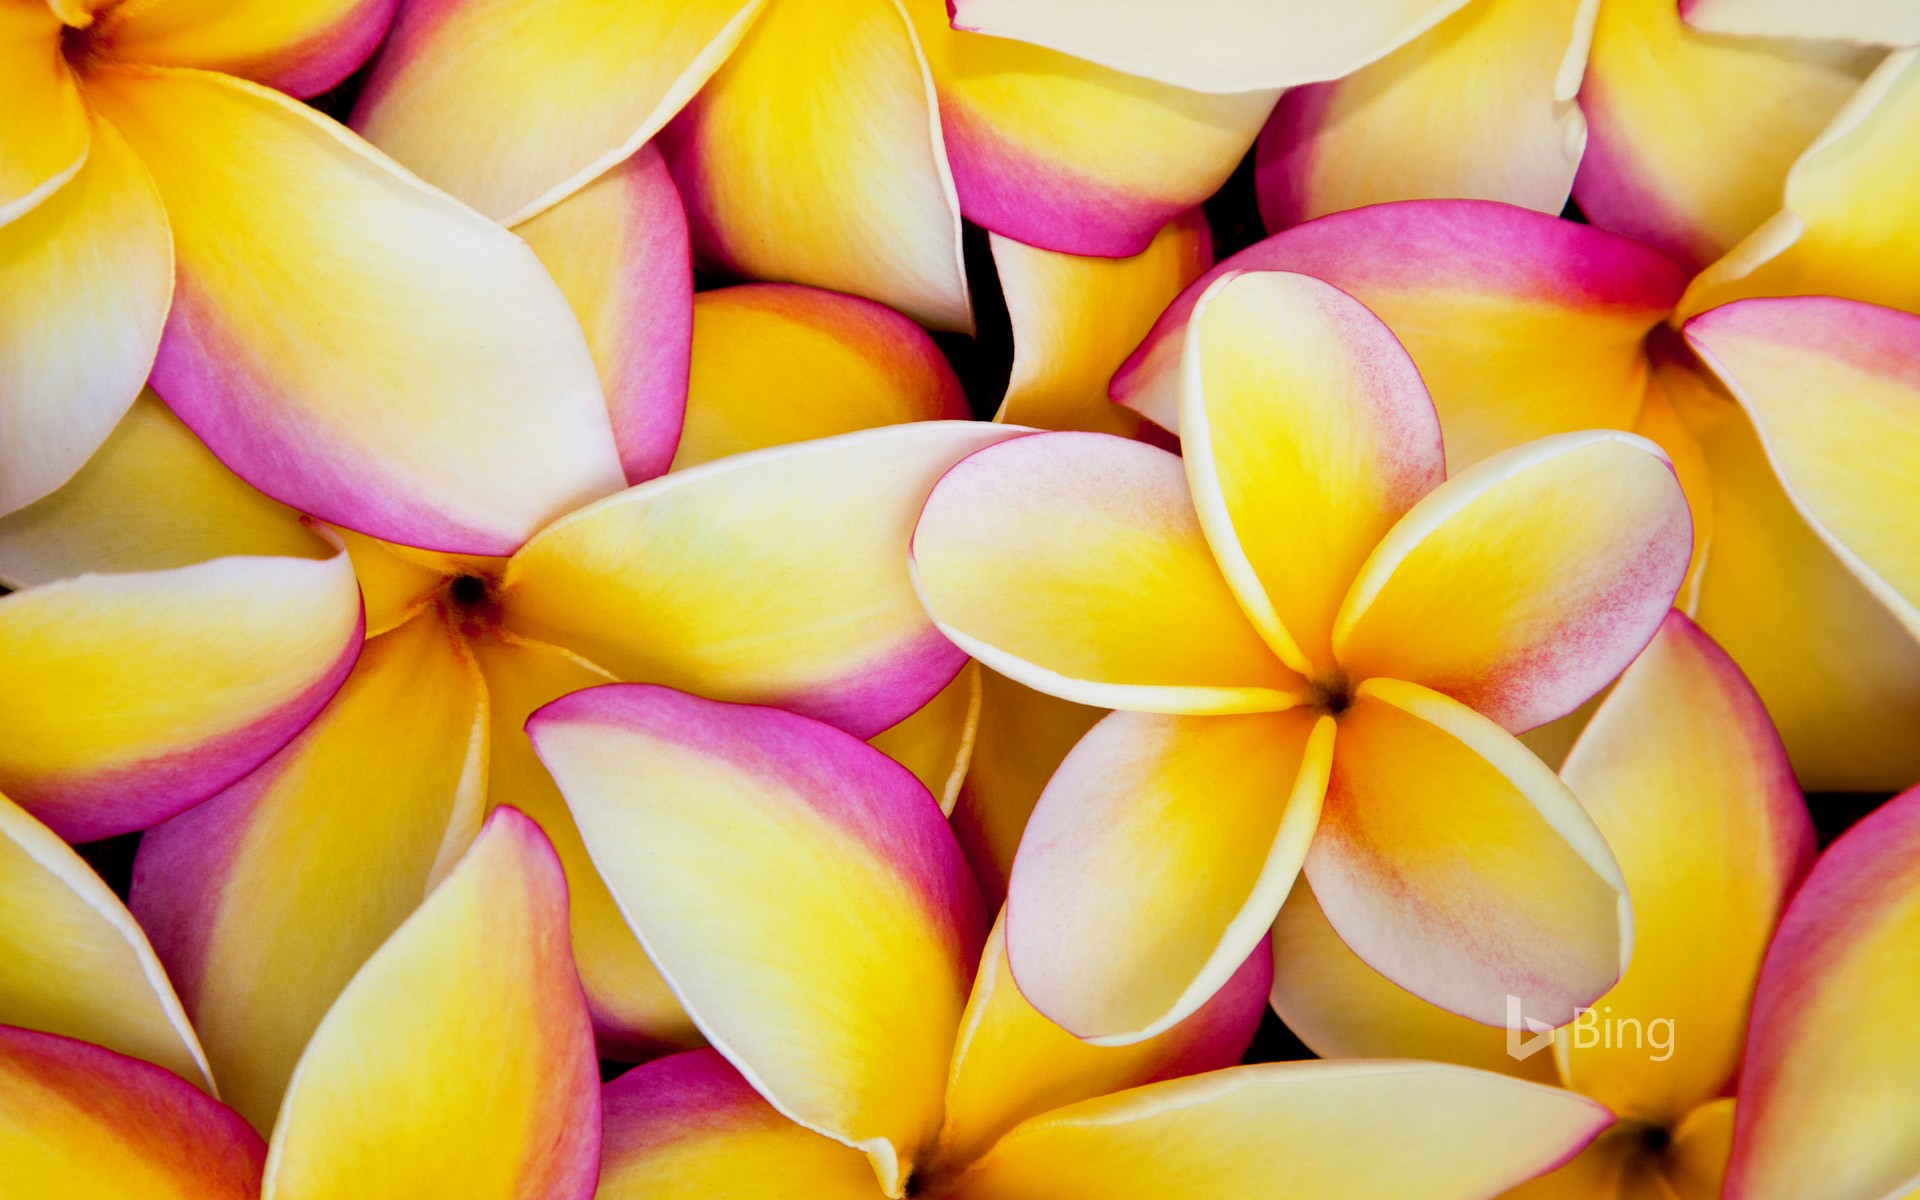 Plumeria flowers in hawaii darrell gulingetty images bing plumeria flowers in hawaii darrell gulingetty images izmirmasajfo Choice Image